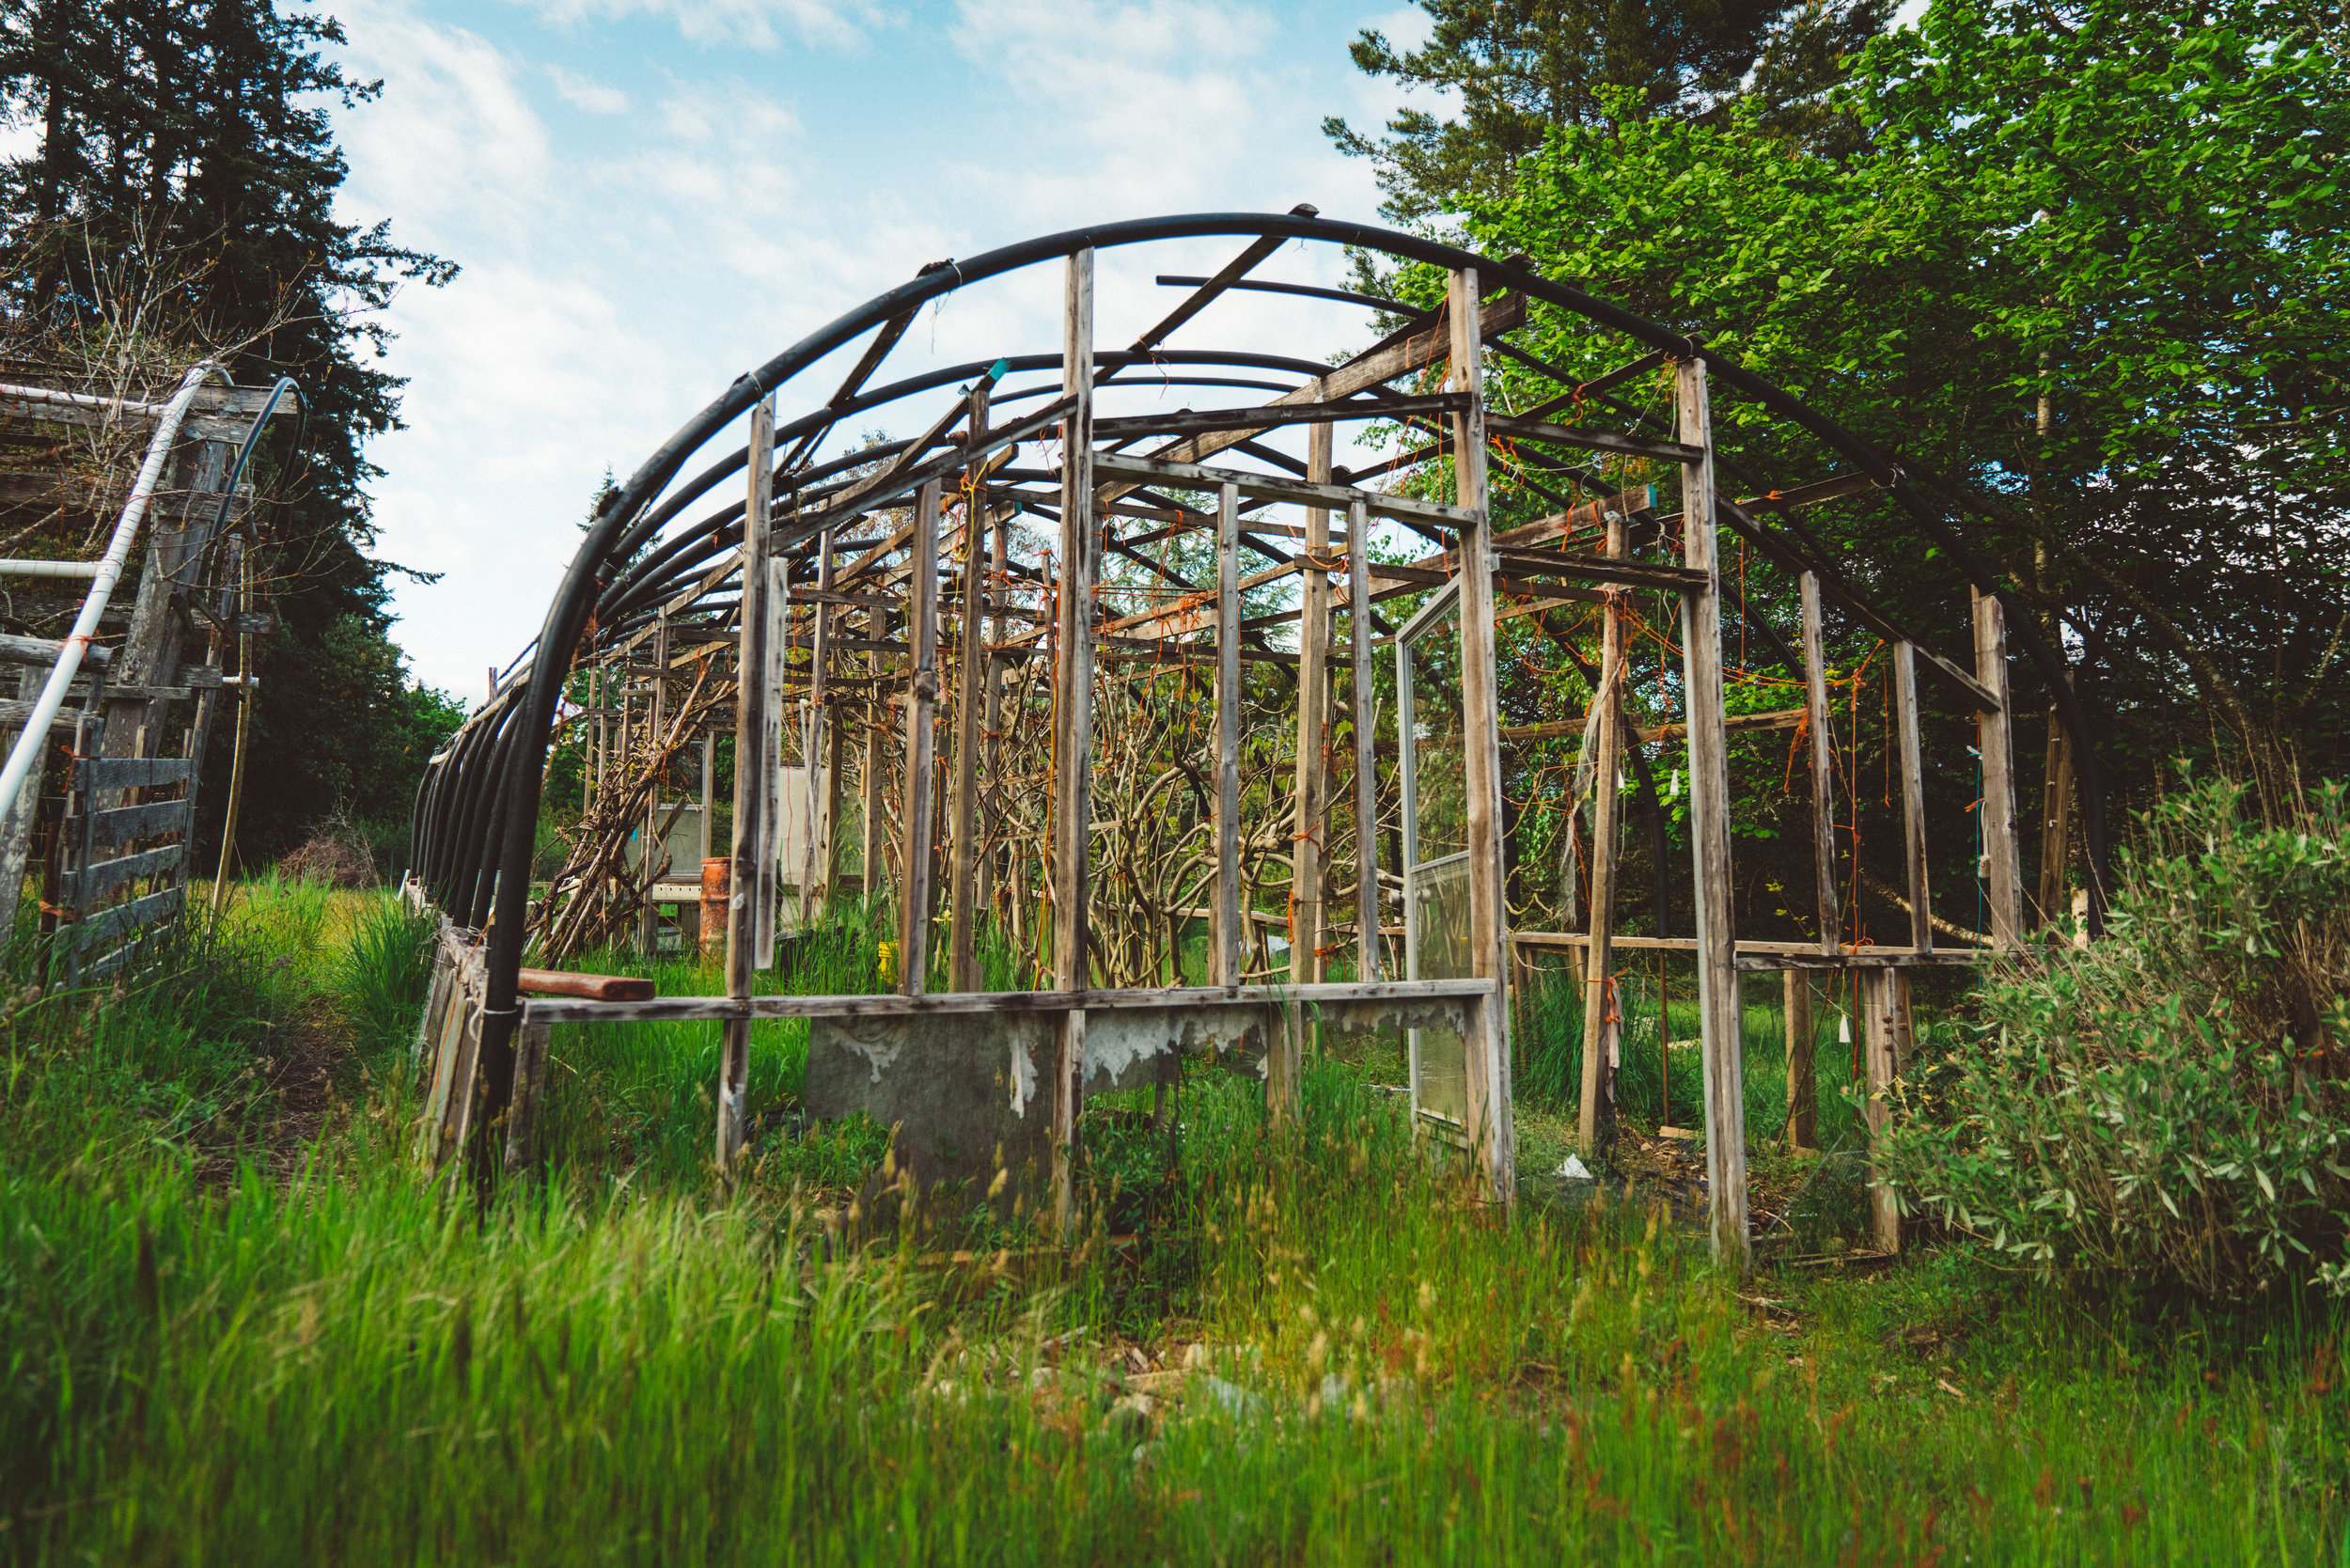 Old greenhouses collapsing in the field.